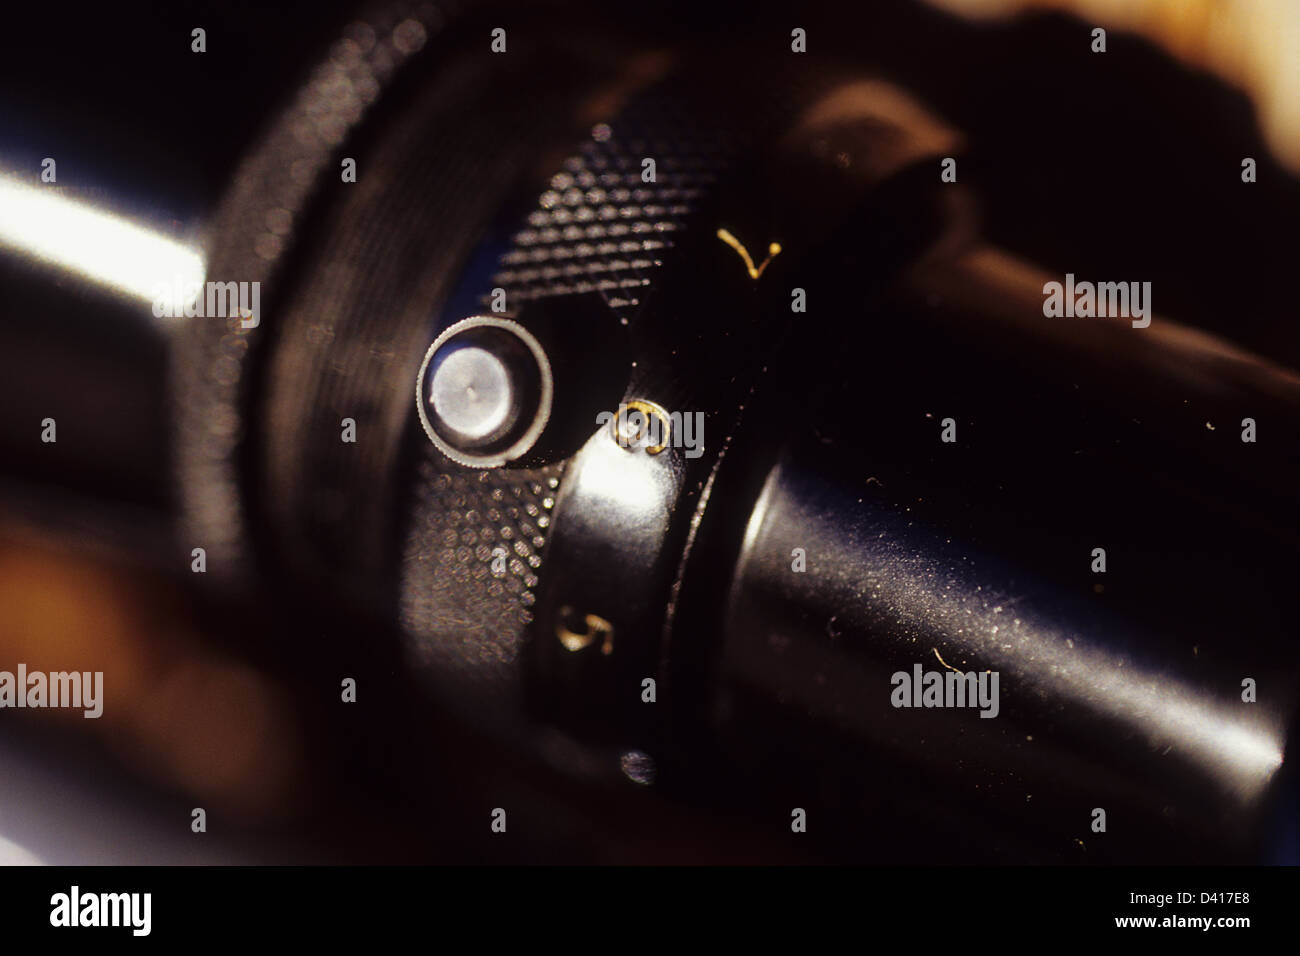 Detail of hunting rifle scope - Stock Image